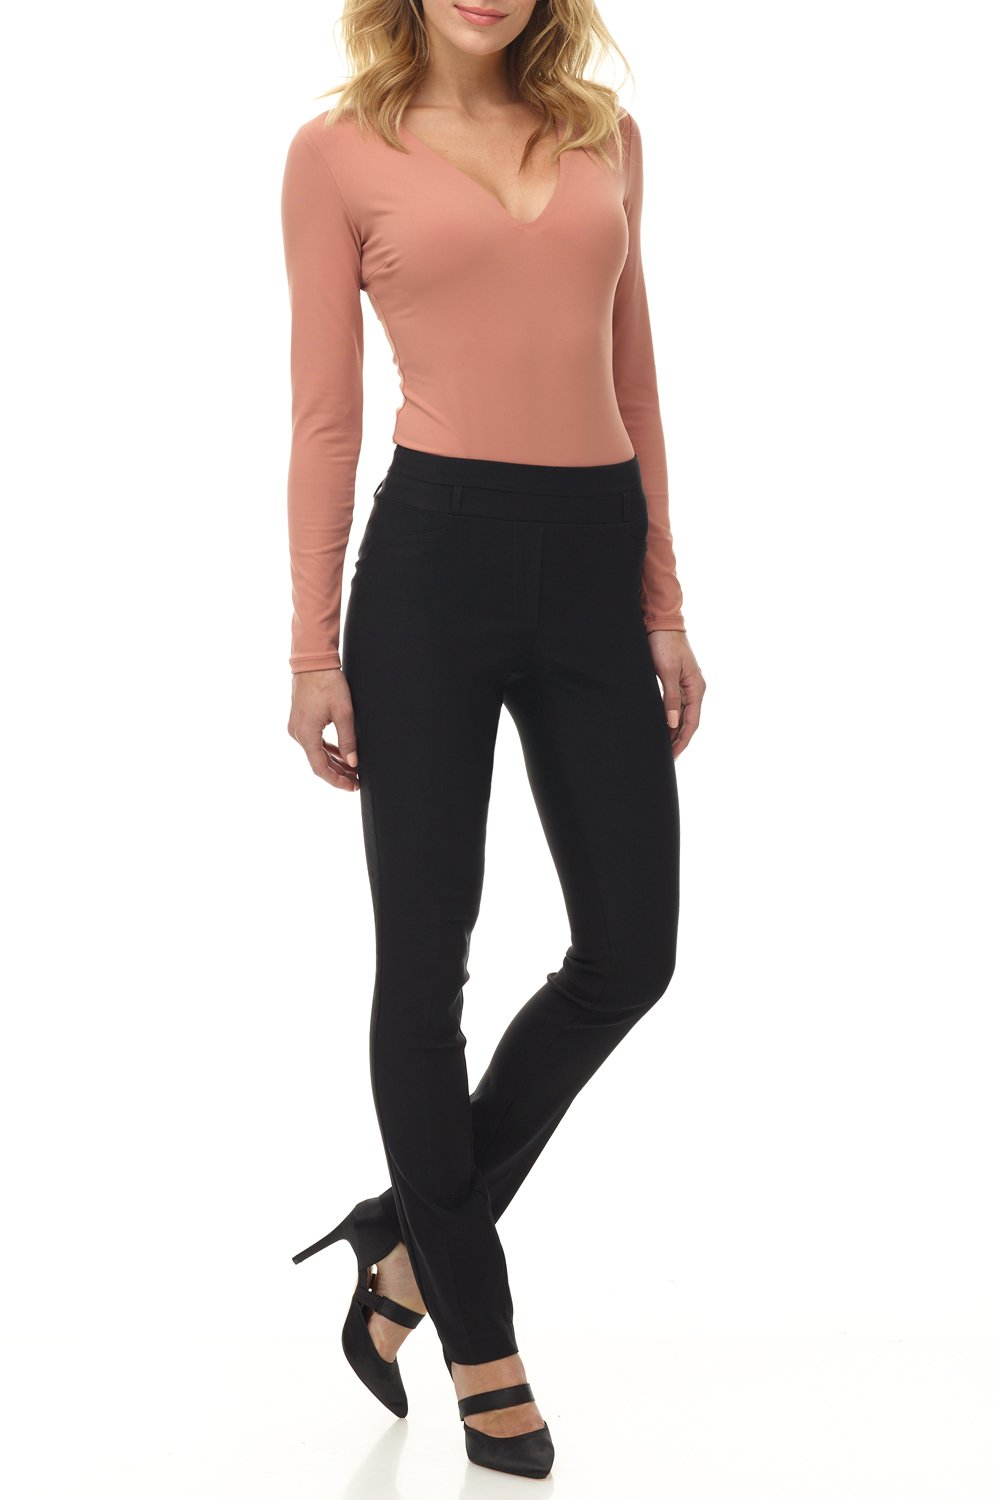 Rekucci Women's Ease into Comfort Stretch Slim Pant